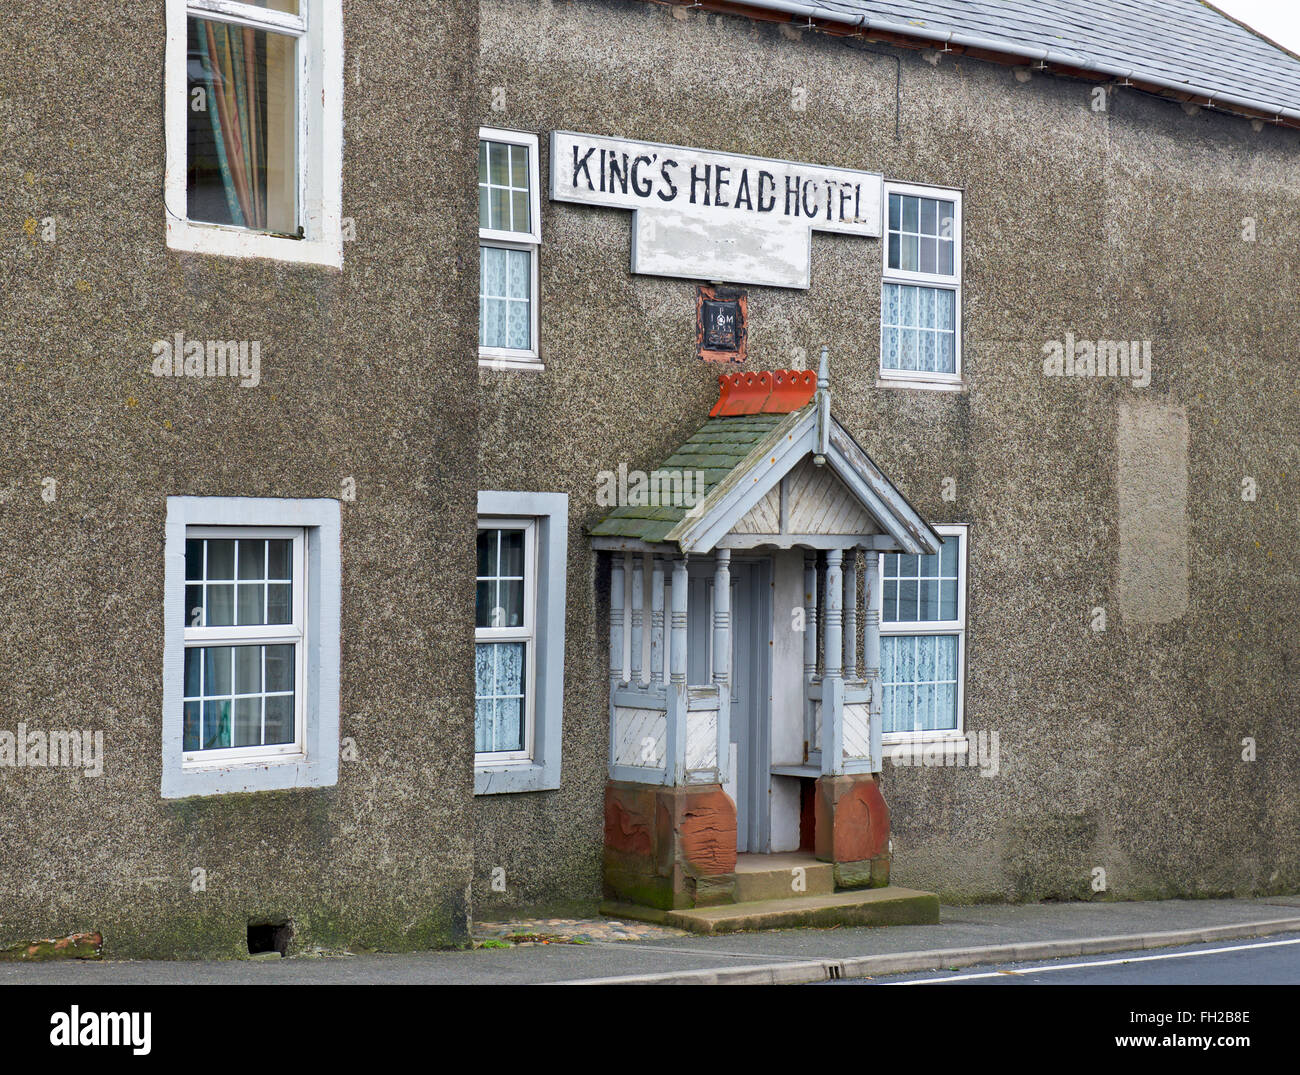 The Kings Head Hotel in Bootle (now closed), West Cumbria, England UK - Stock Image